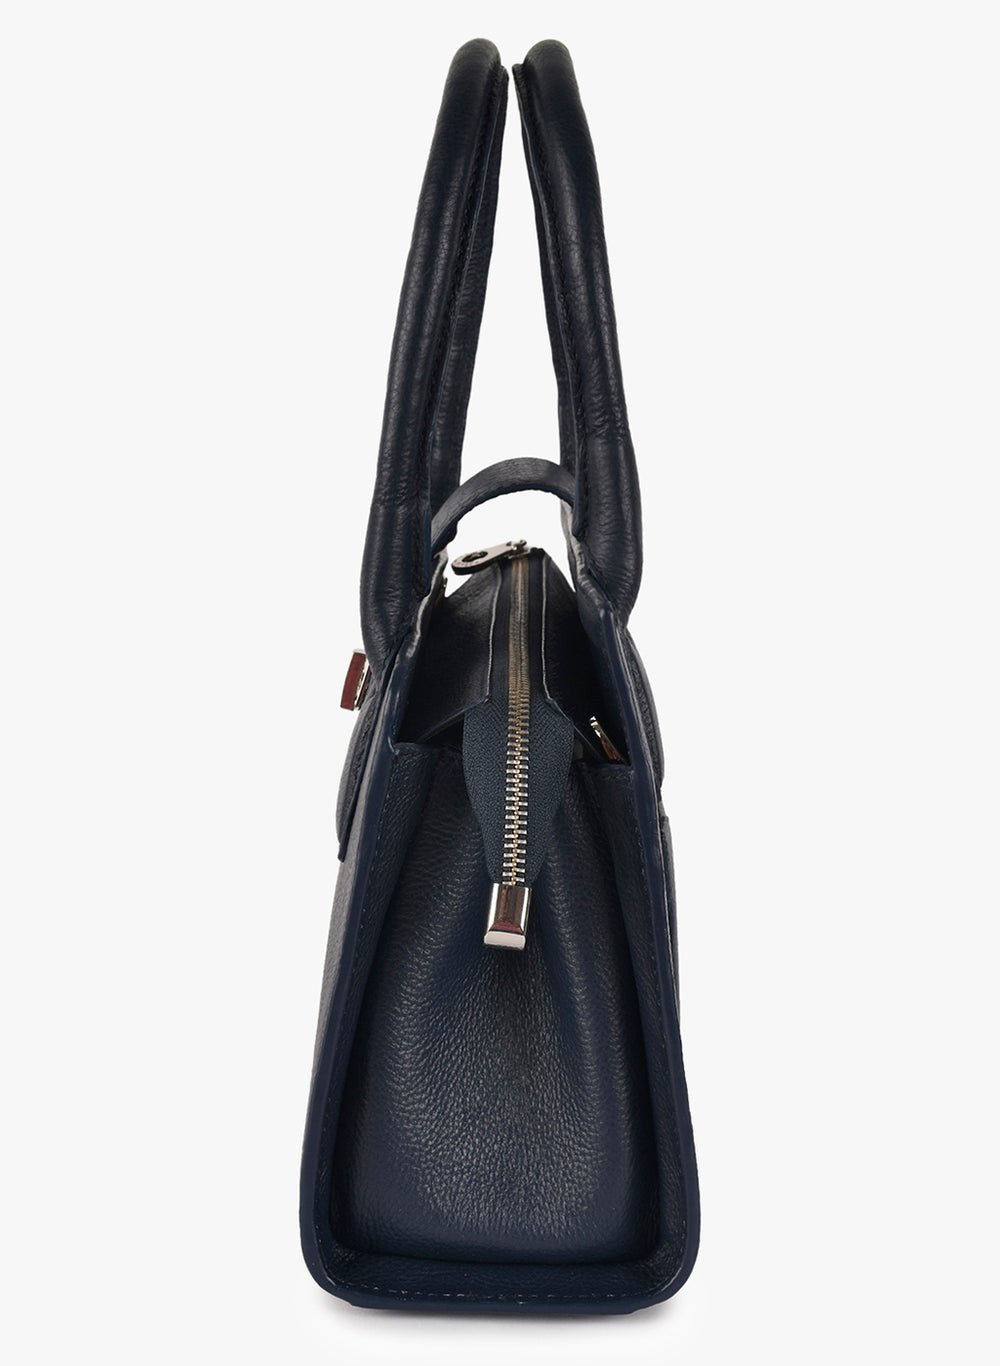 PR532-Phive Rivers Women's Leather HandBag (Navy_PR532)-Home > Bags > Handbags-Phive Rivers-Faeshon.com